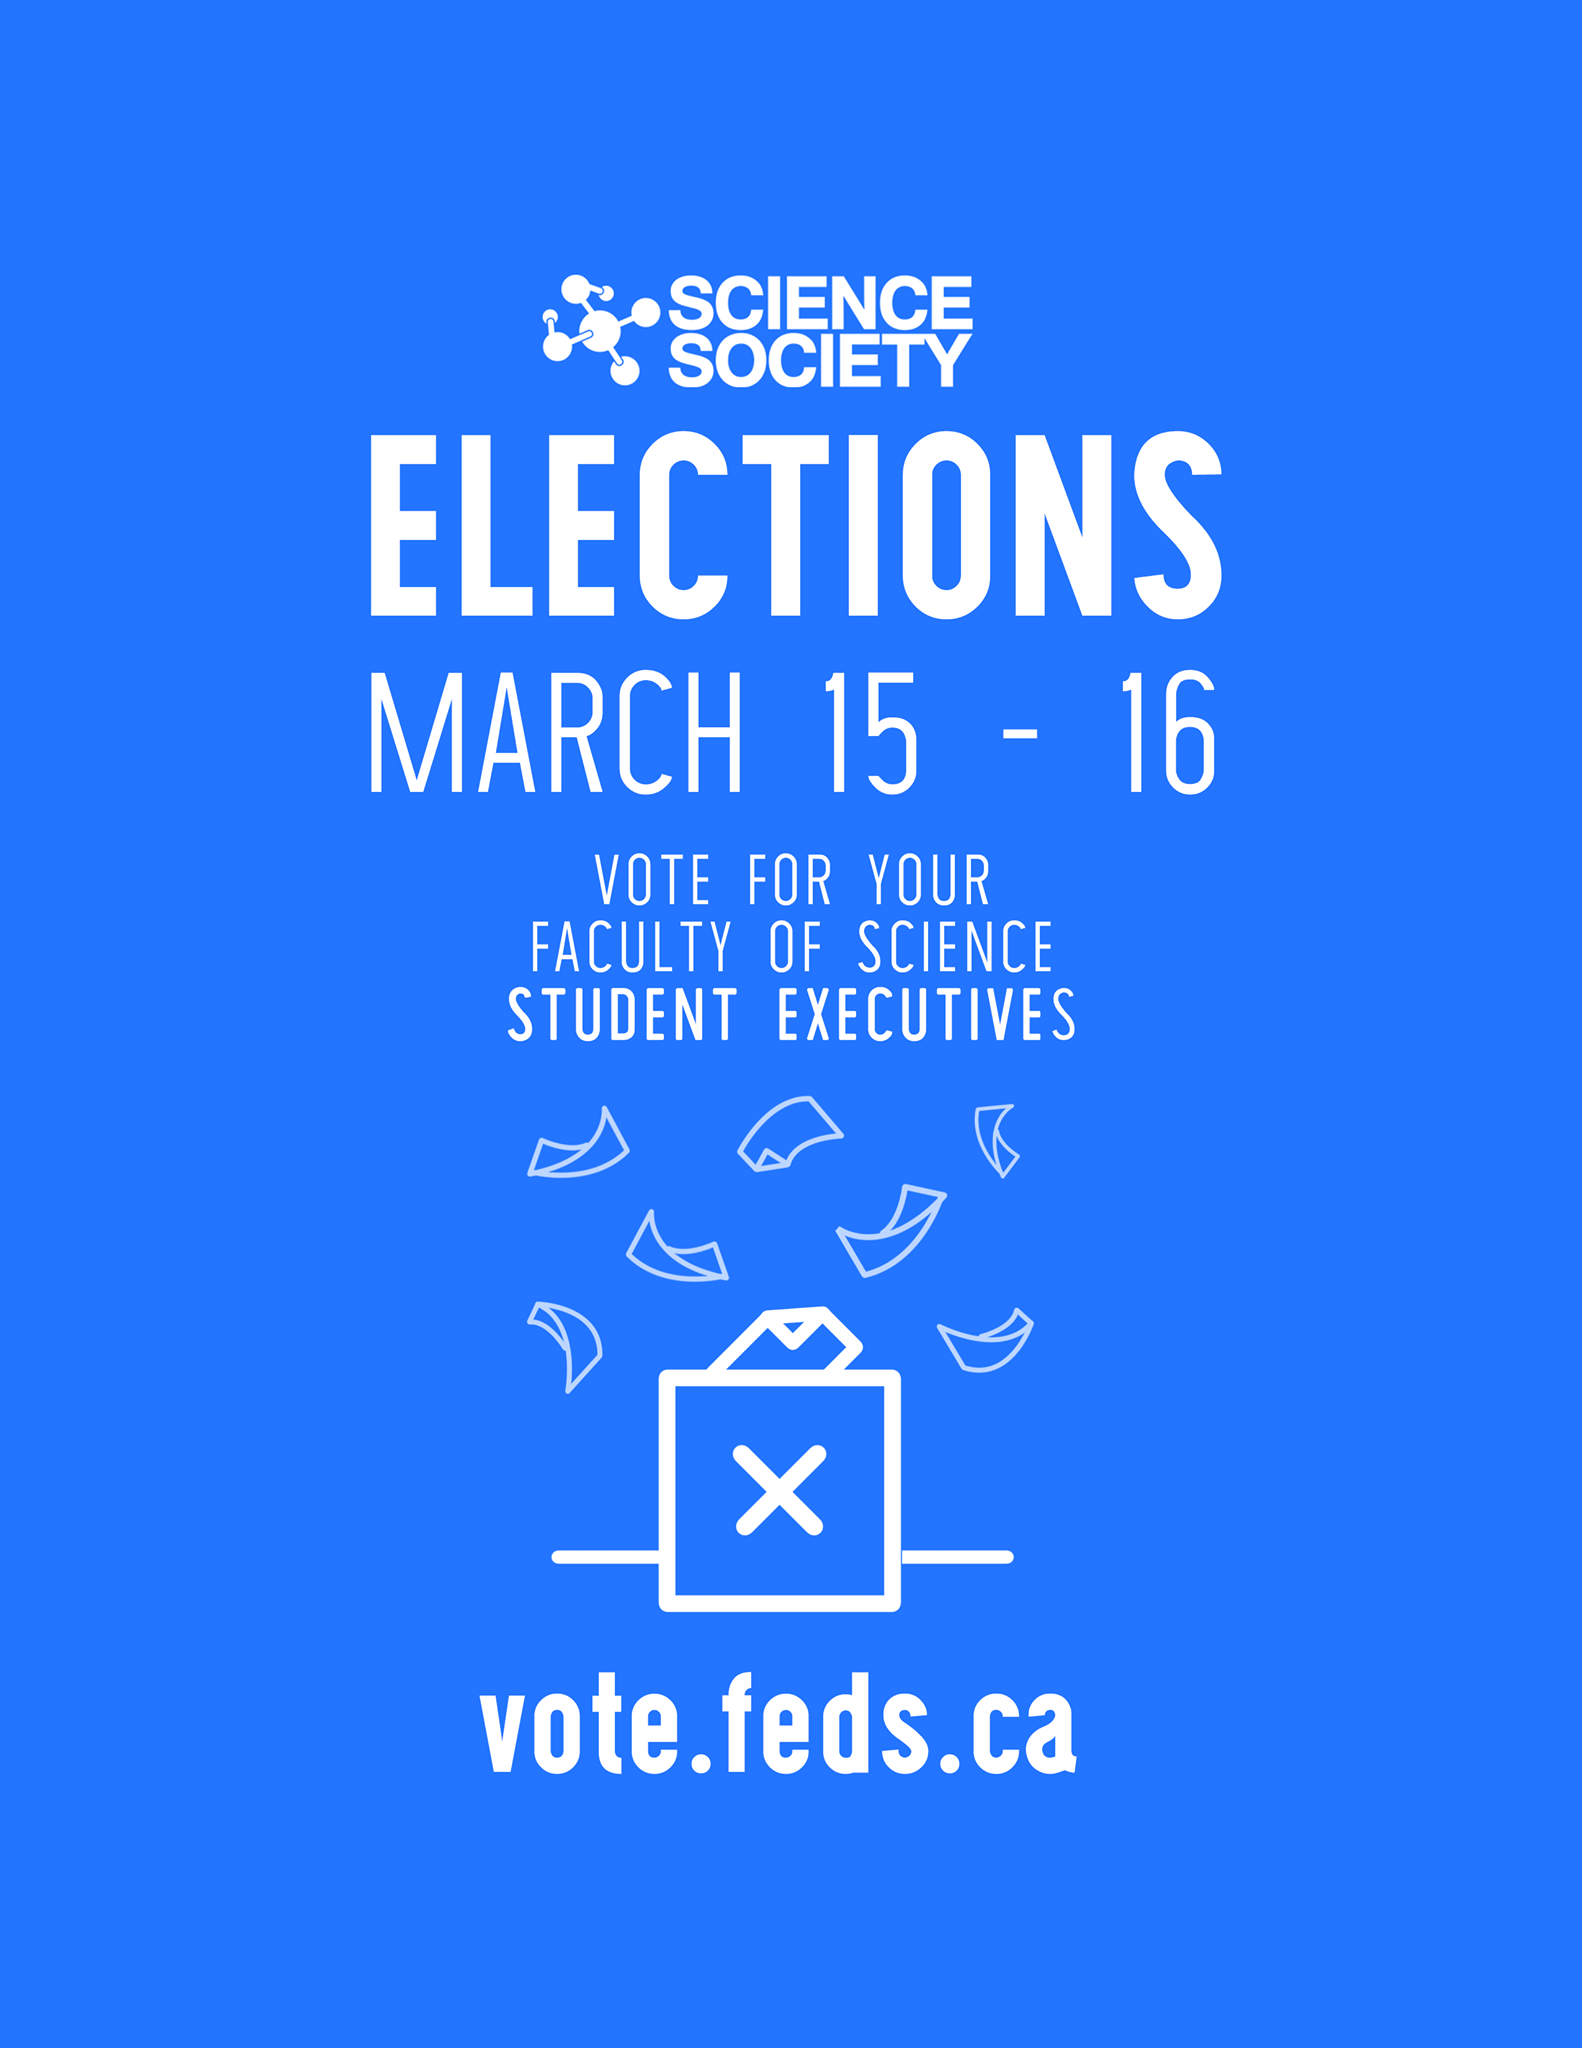 Science Society Elections